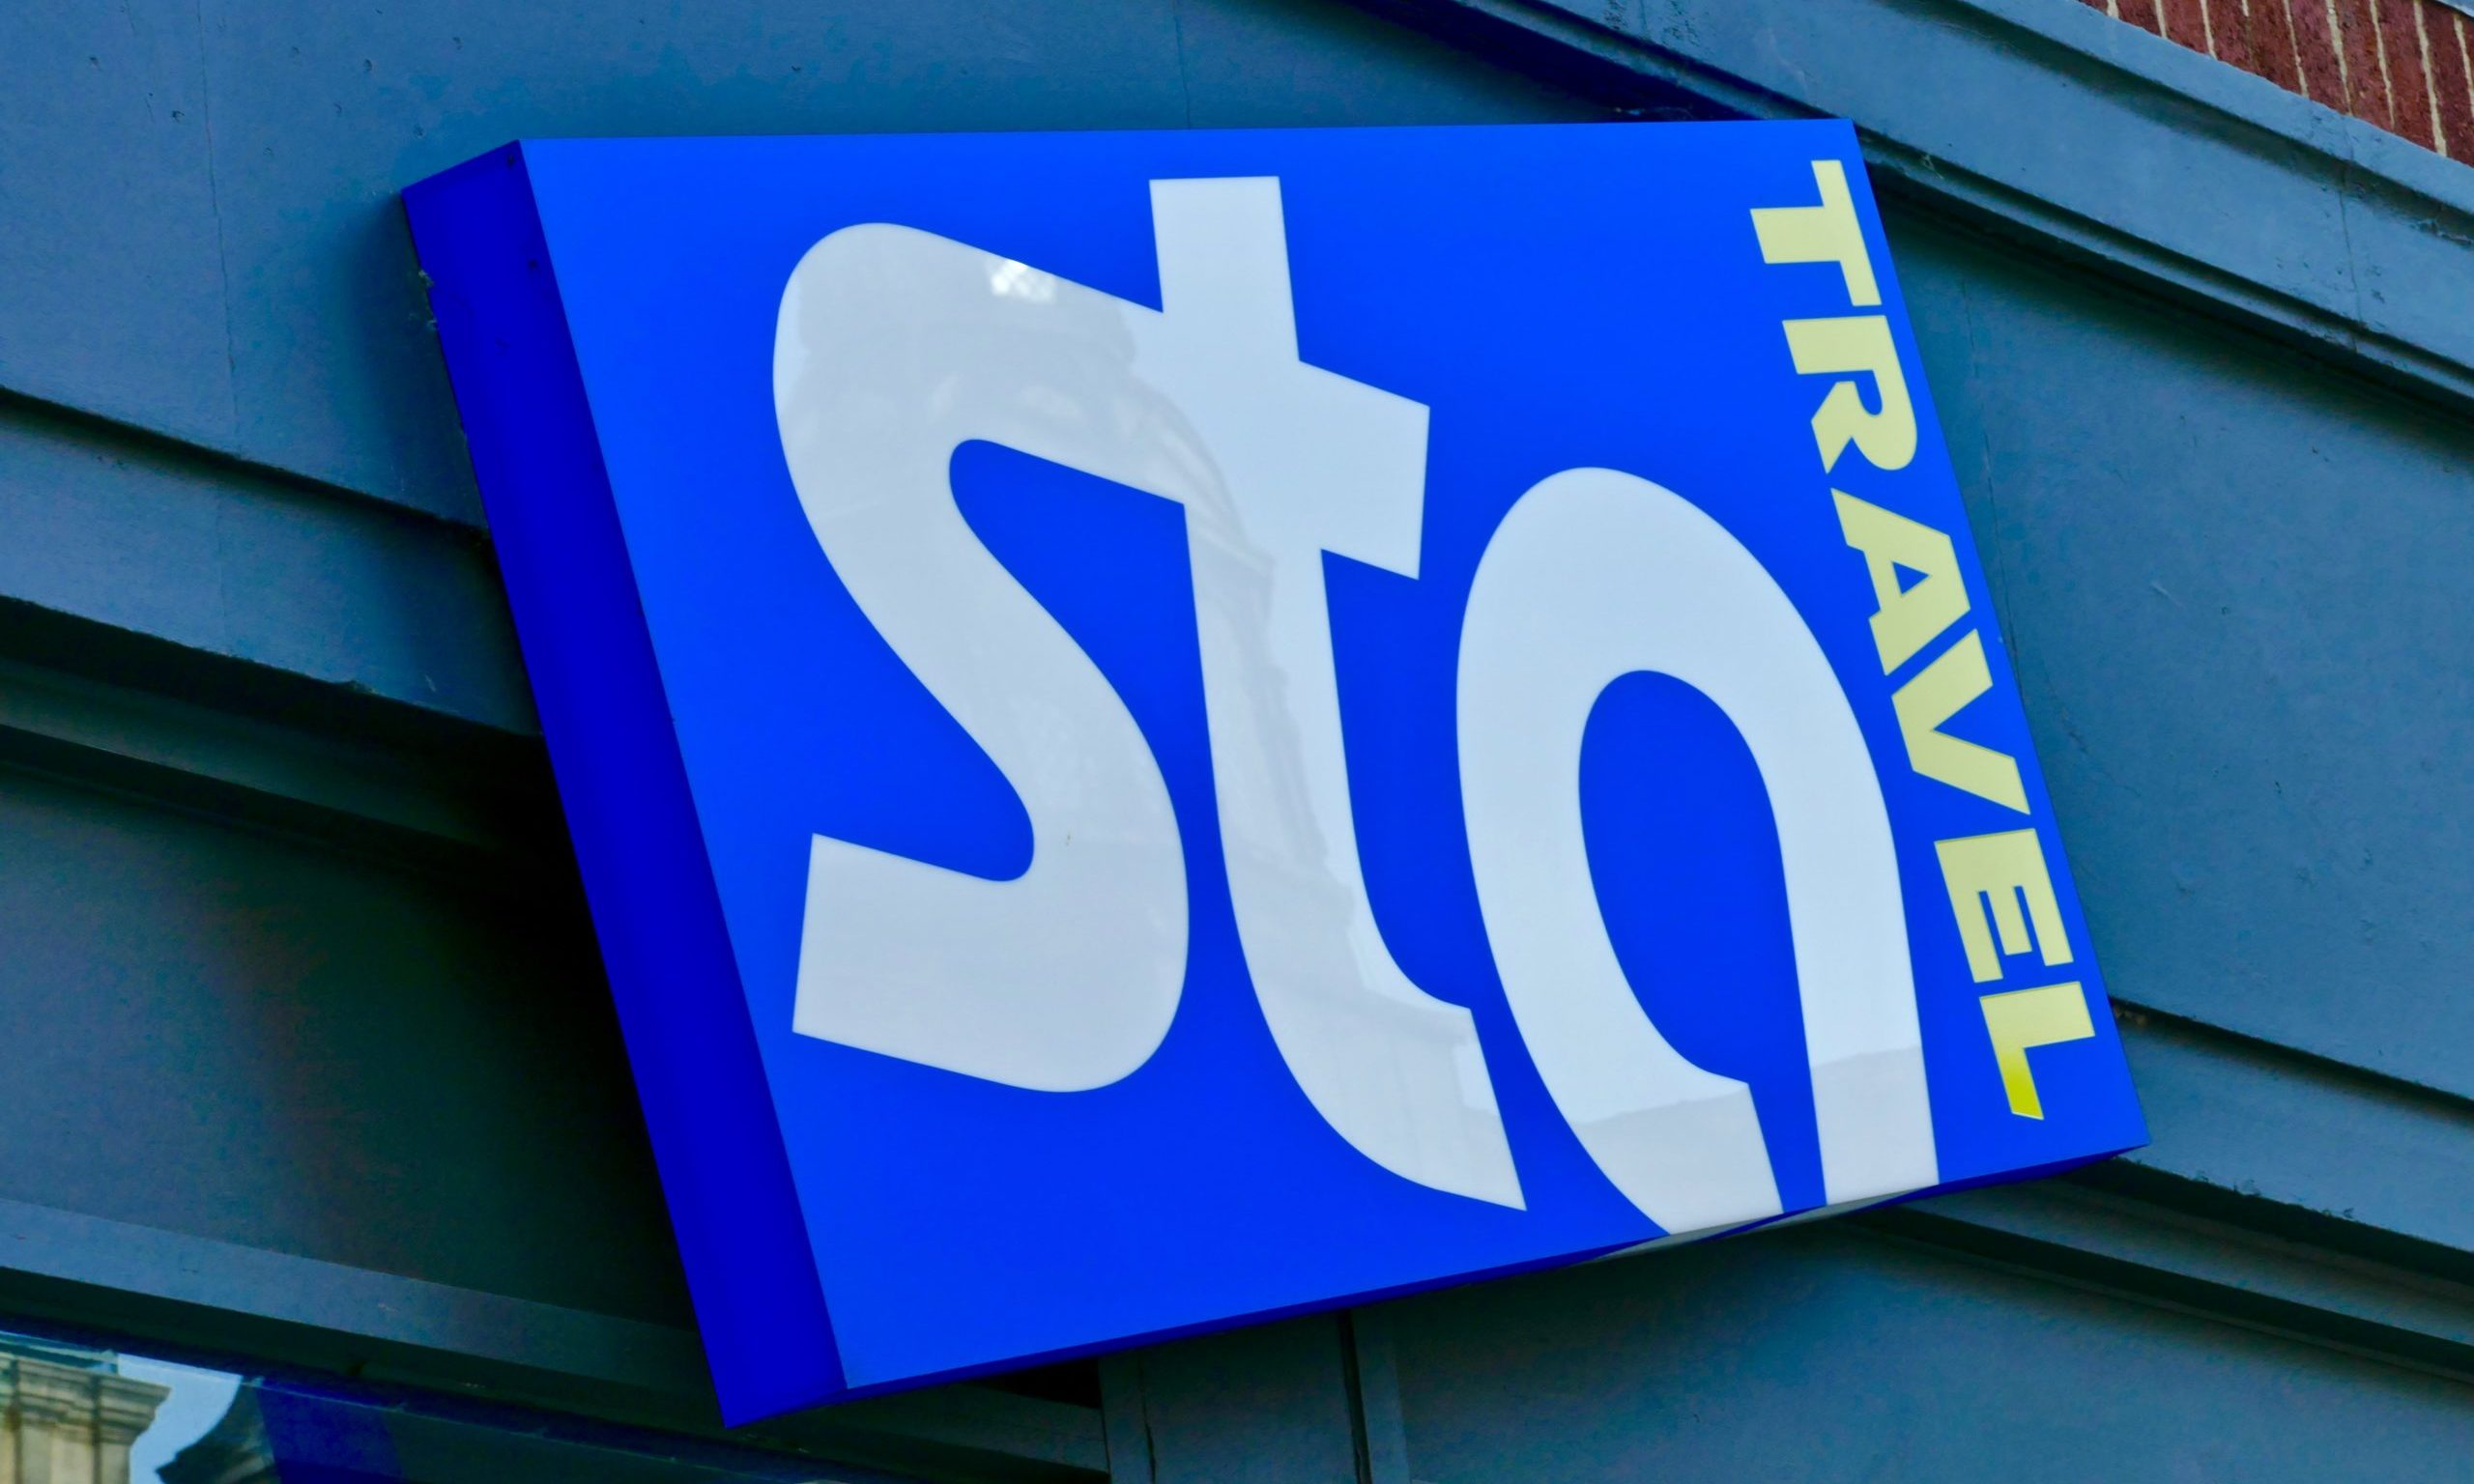 A STA Travel sign